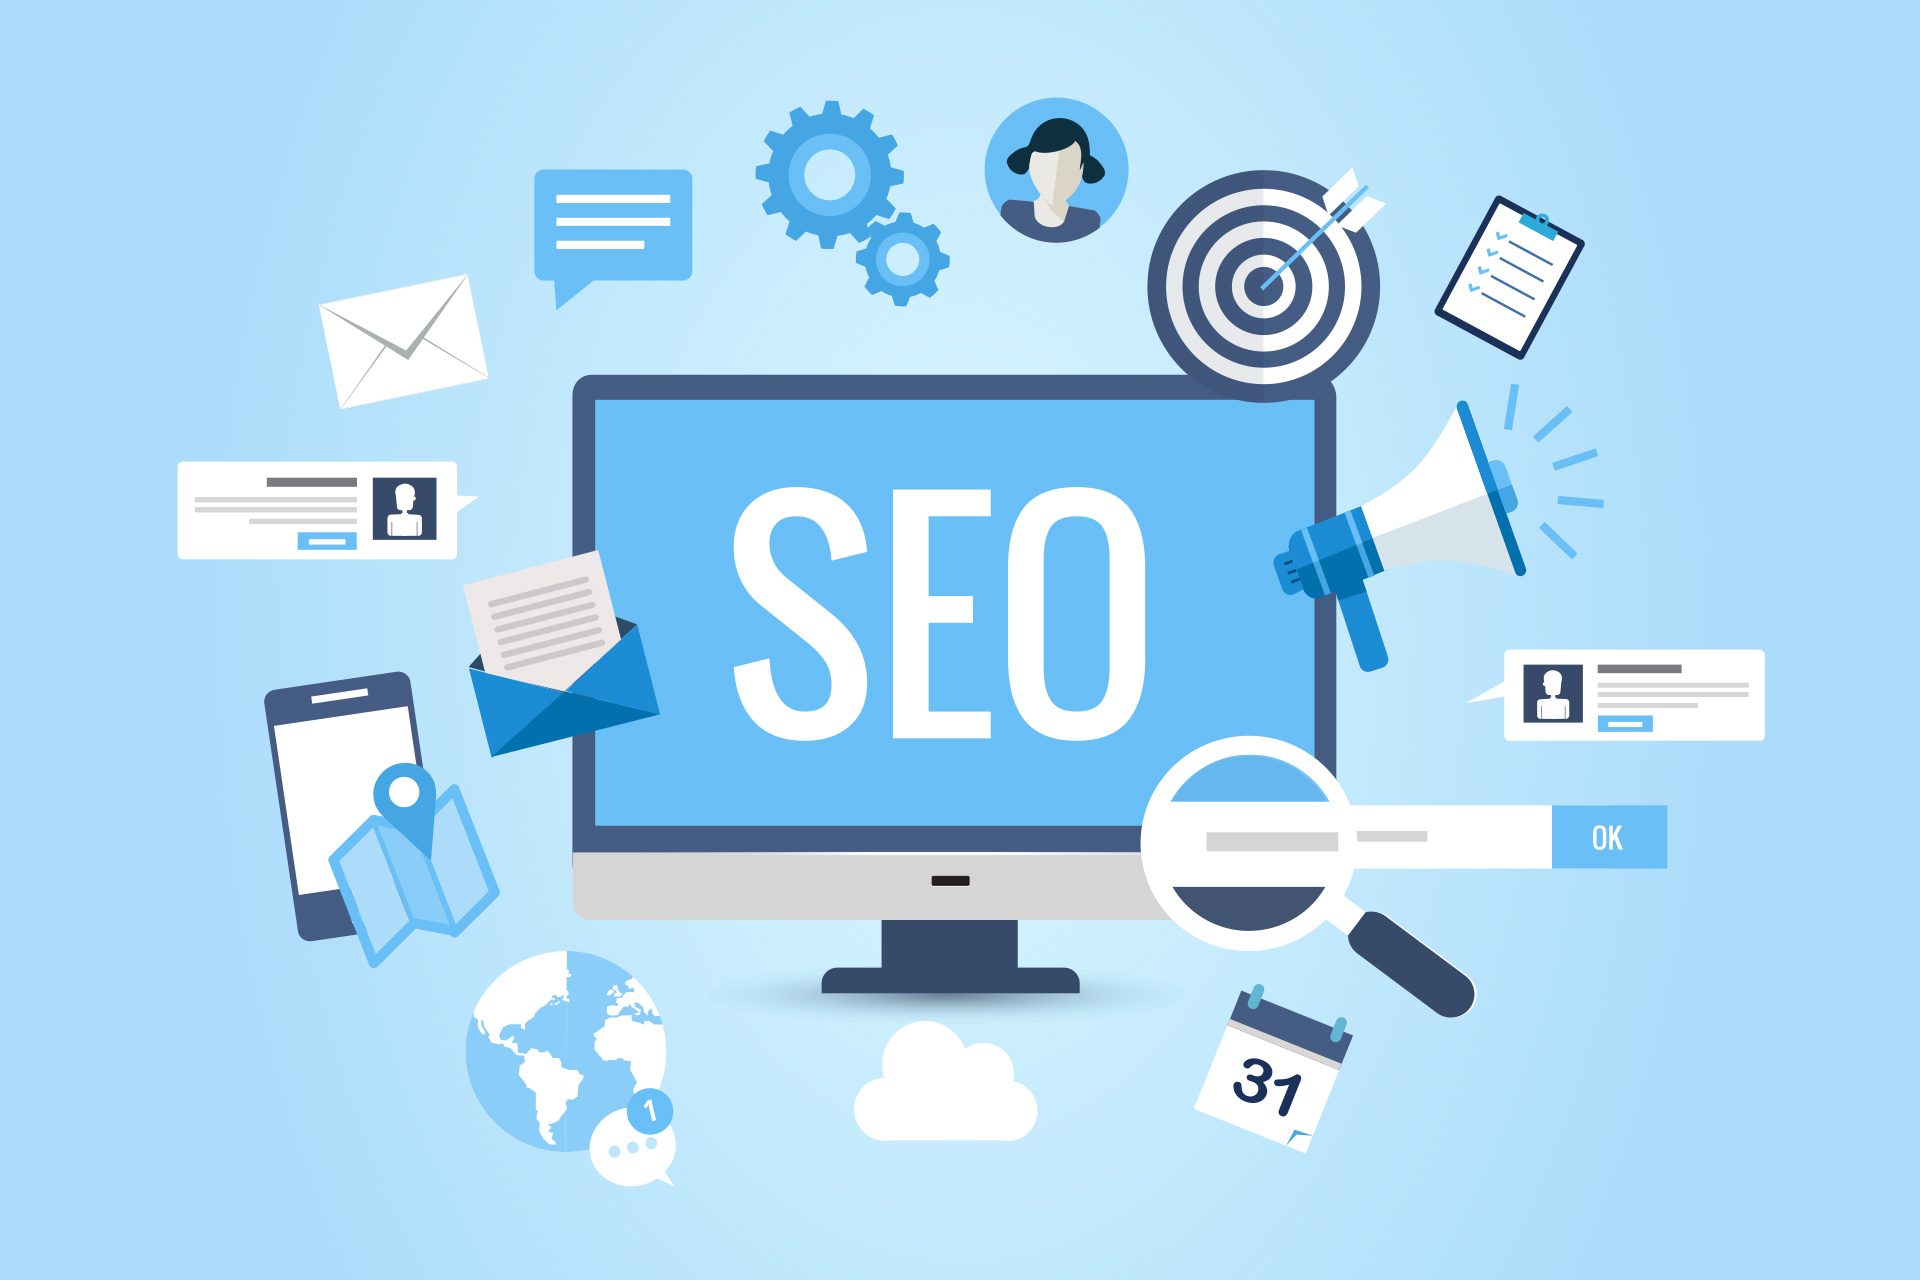 What is SEO? And where it is used?